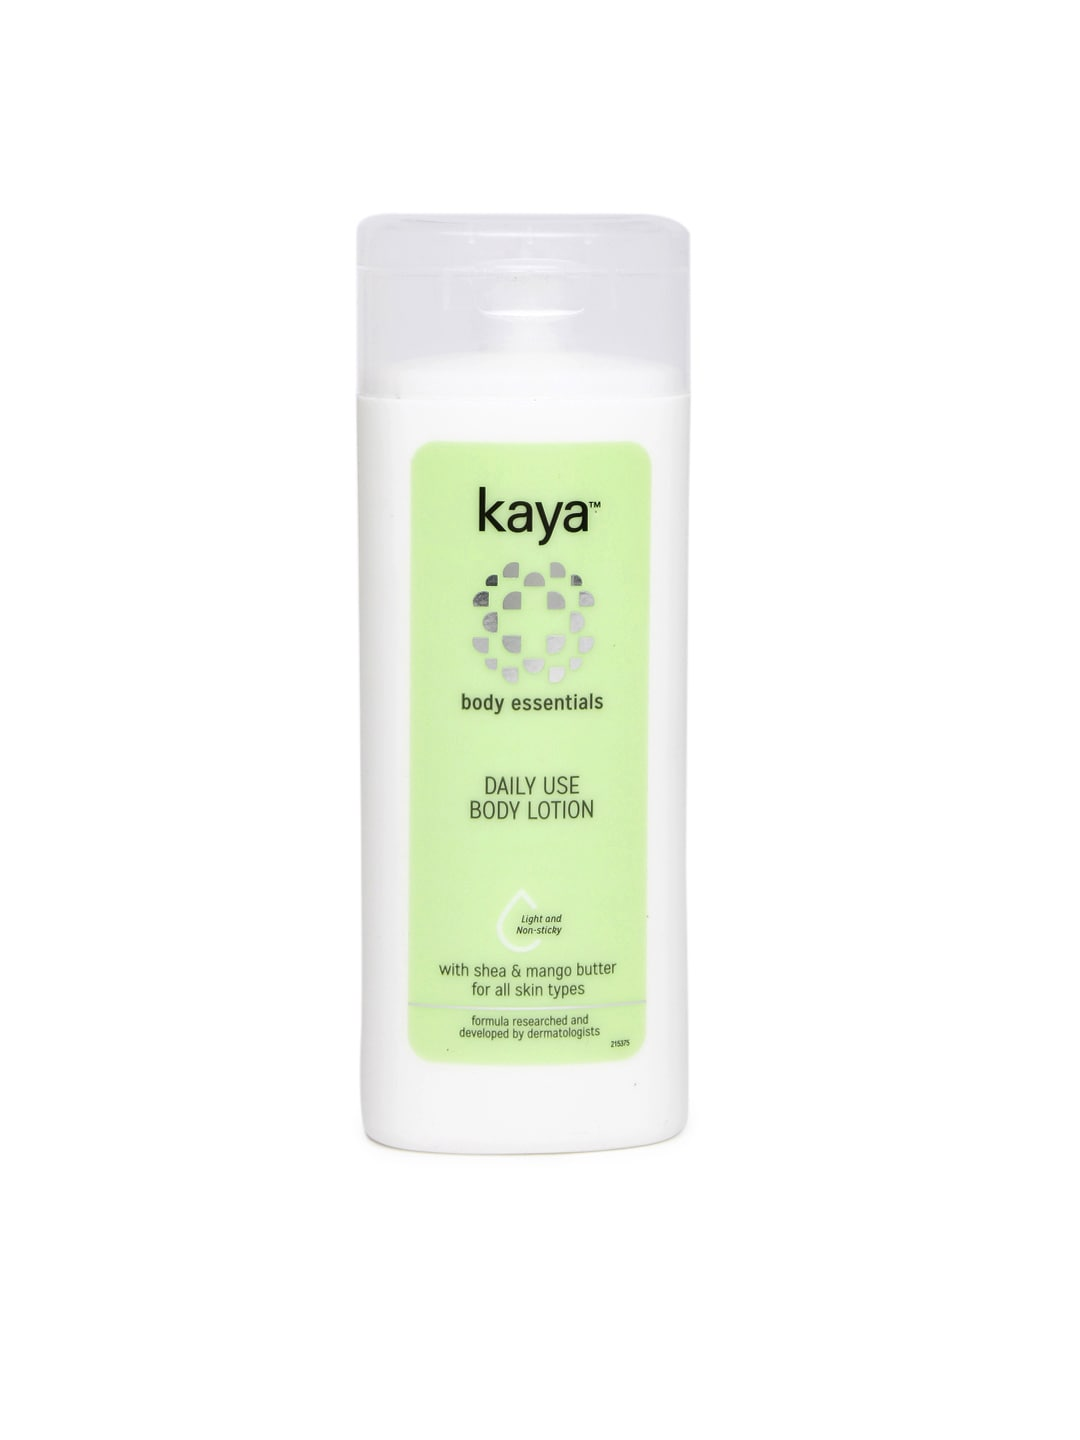 Kaya Skin Clinic Body Essentials Daily Use Body Lotion 200 ml image